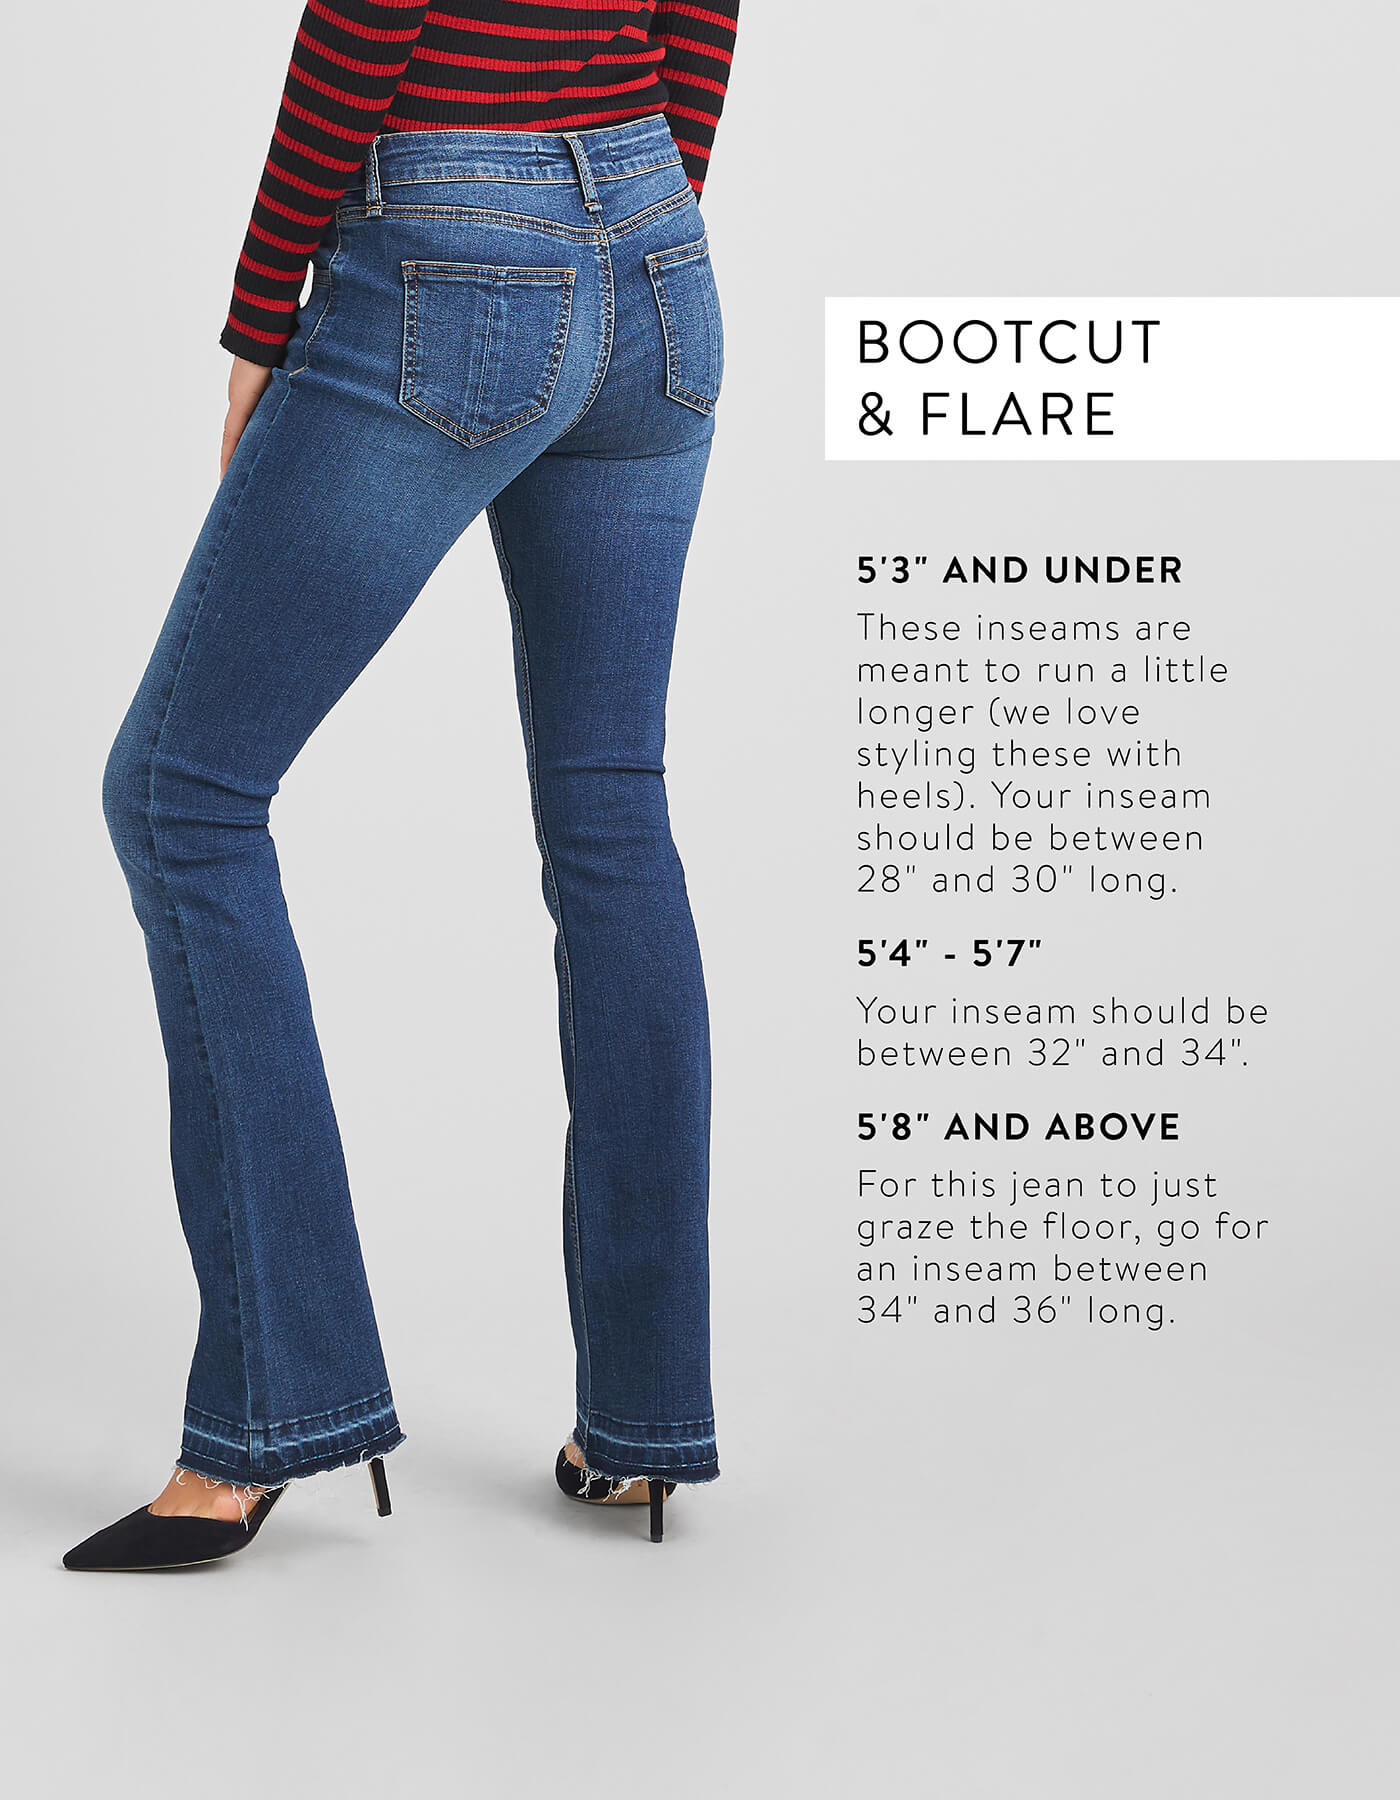 063599f1 guide to denim inseams, denim inseam guide, denim inseams. How Bootcut &  Flare Jeans Should Fit